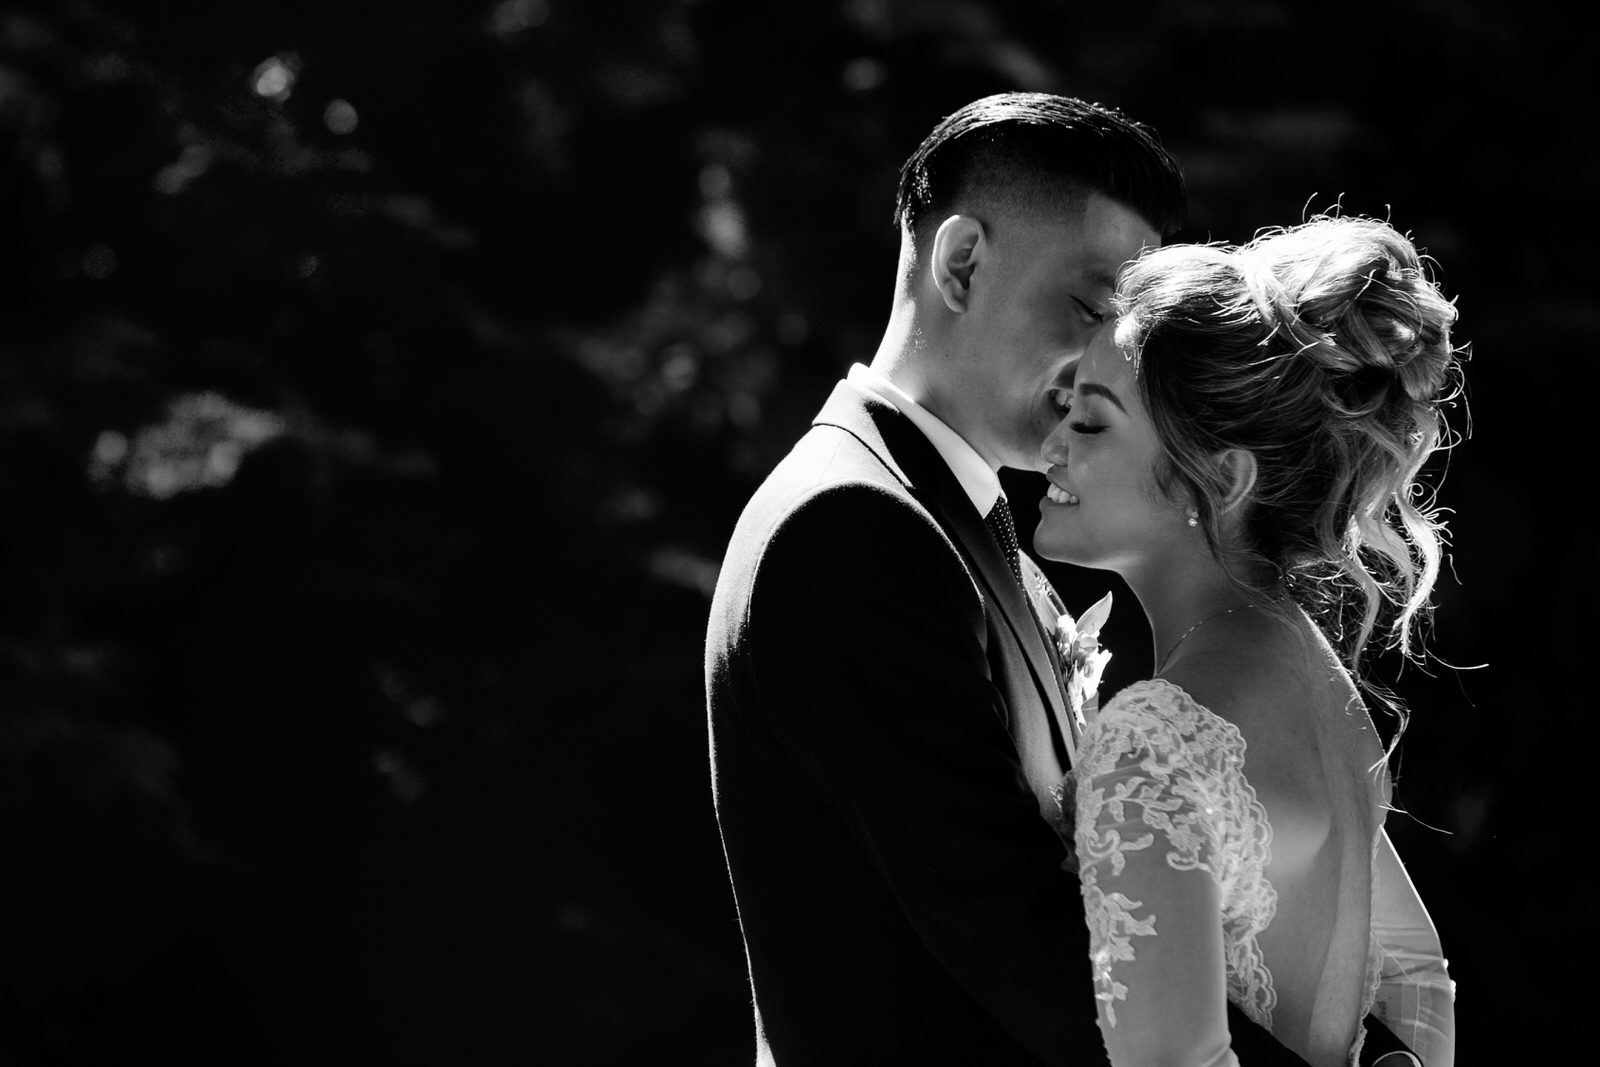 A bride and groom embrace in a black and white photo taken near Deer Lake in Burnaby, BC.